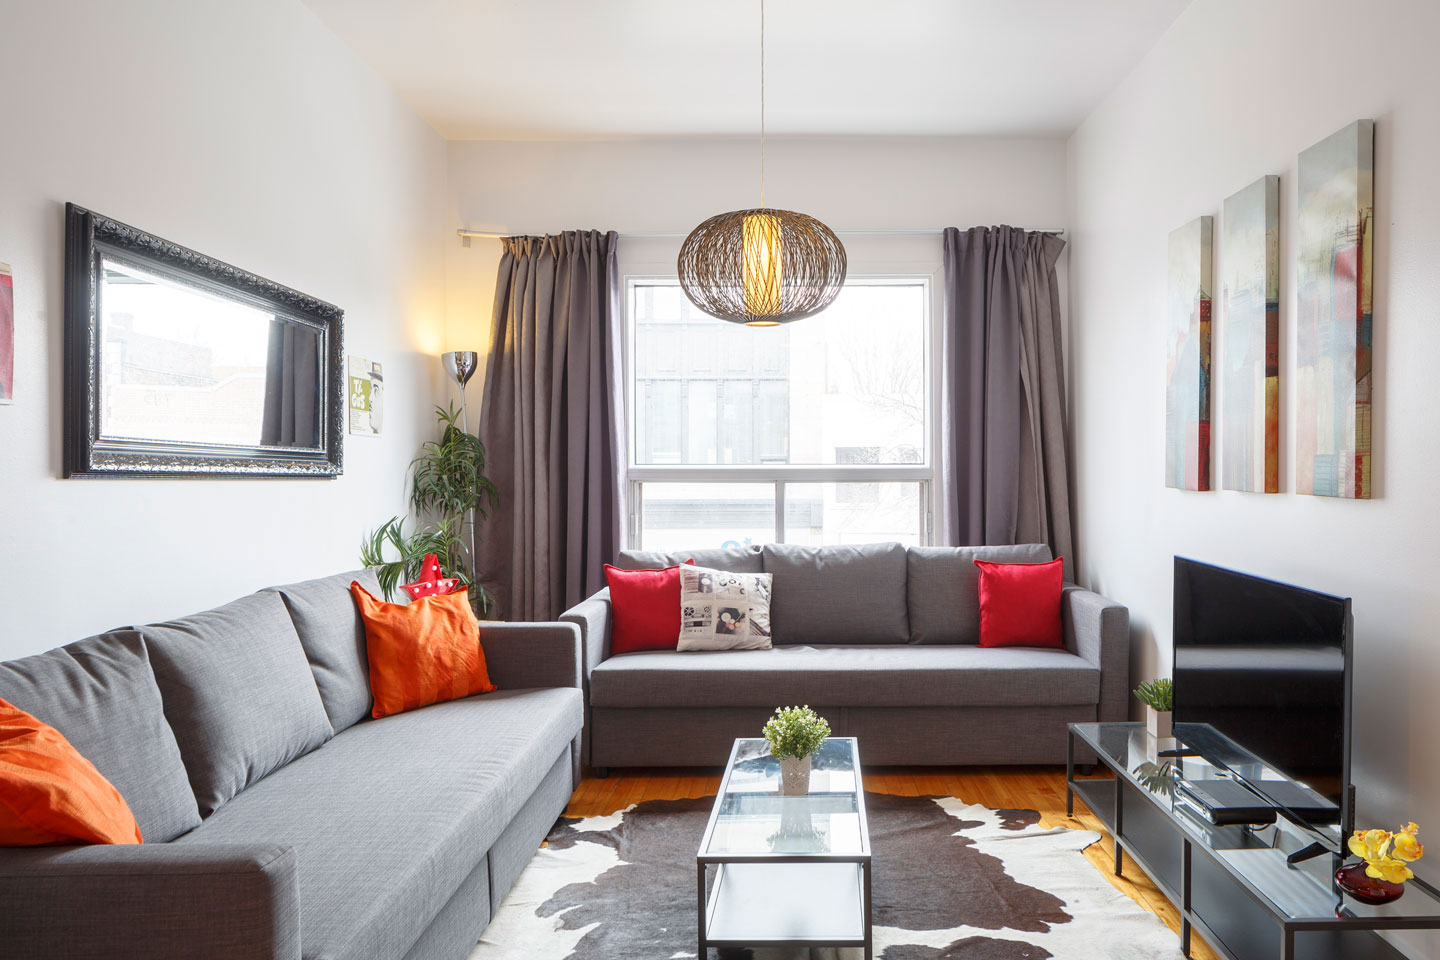 Vinyl: living room with 2 comfortable sofa-beds